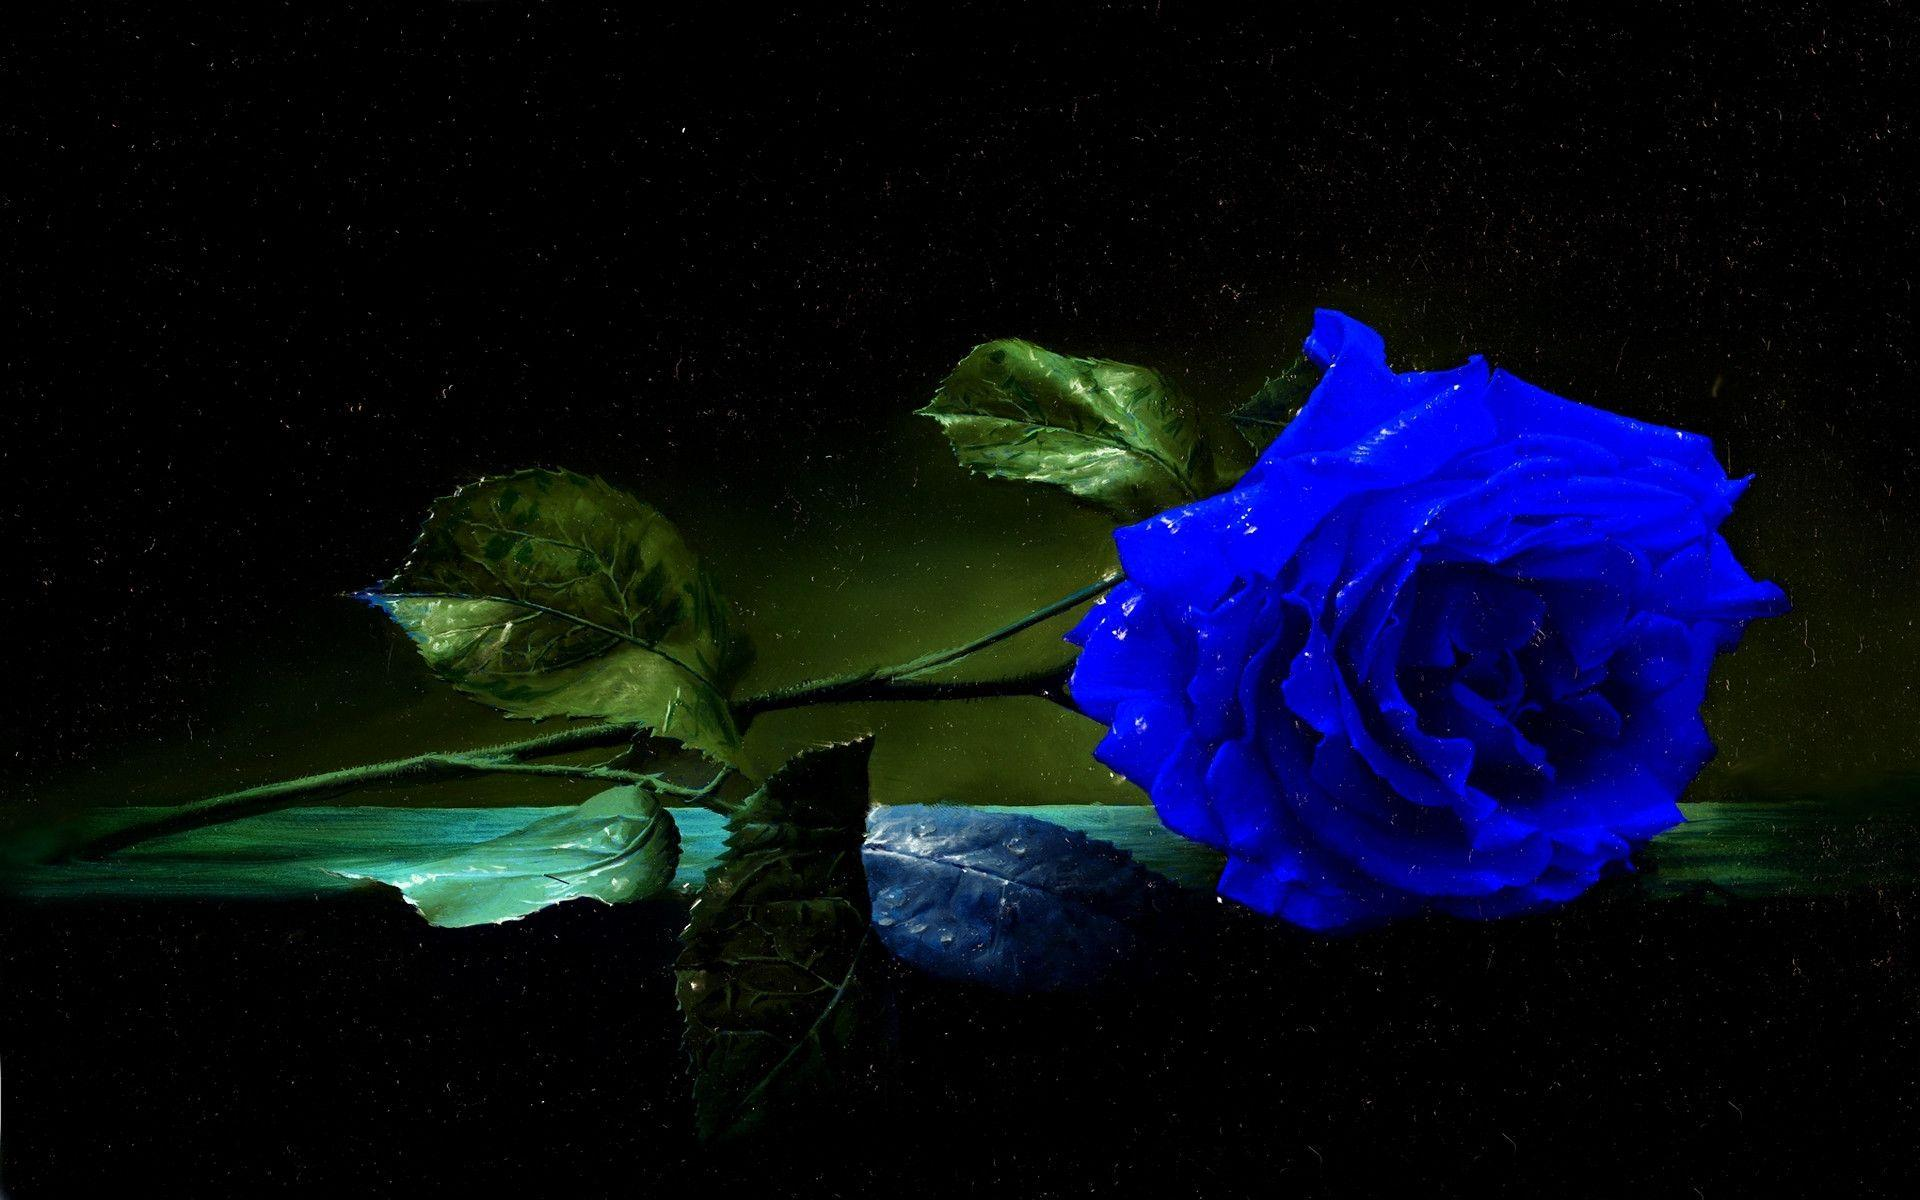 blue rose wallpapers full hd wallpaper search